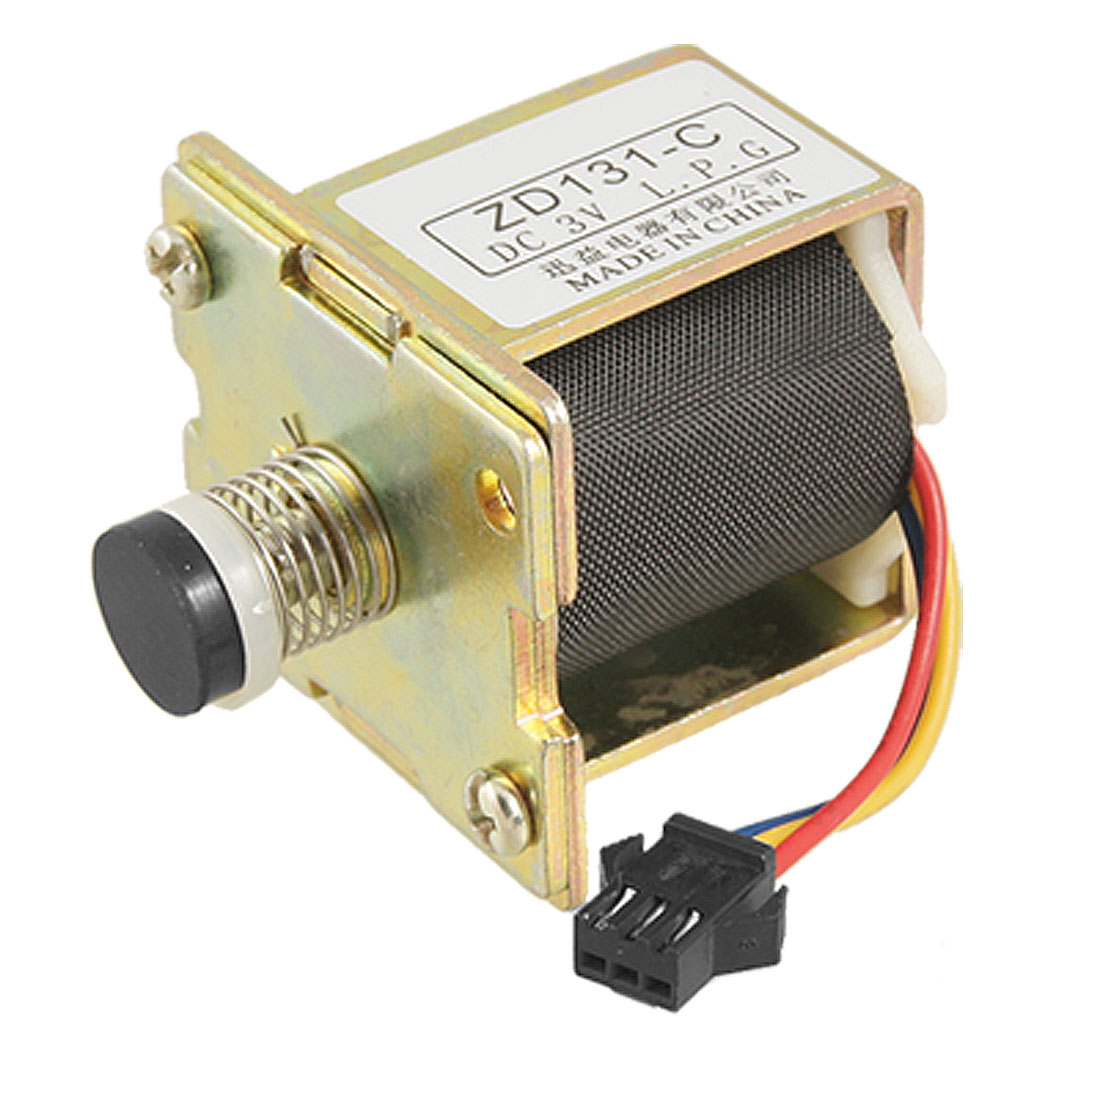 DC 3V ZD 131-c Solenoid Valve for fuel Gas Fast Water Heater